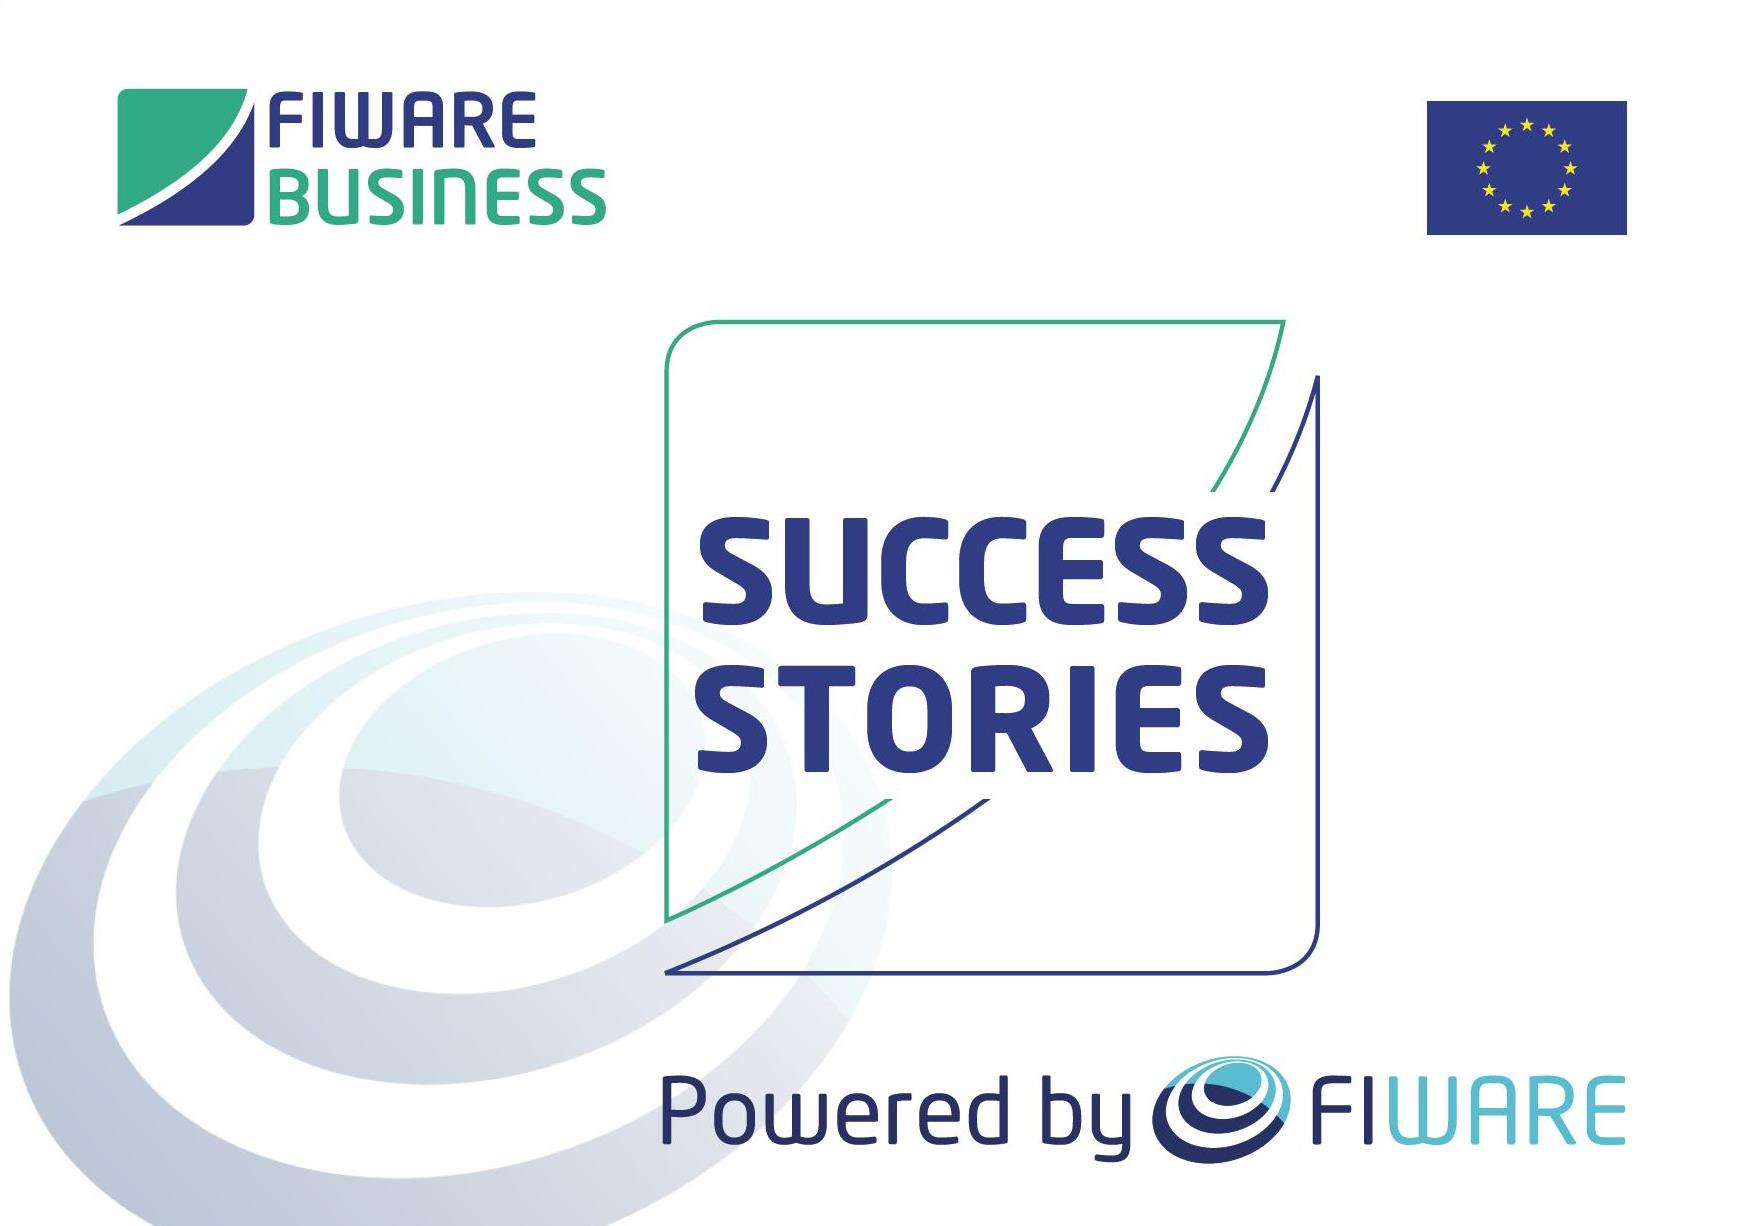 FI-Business-success-stories